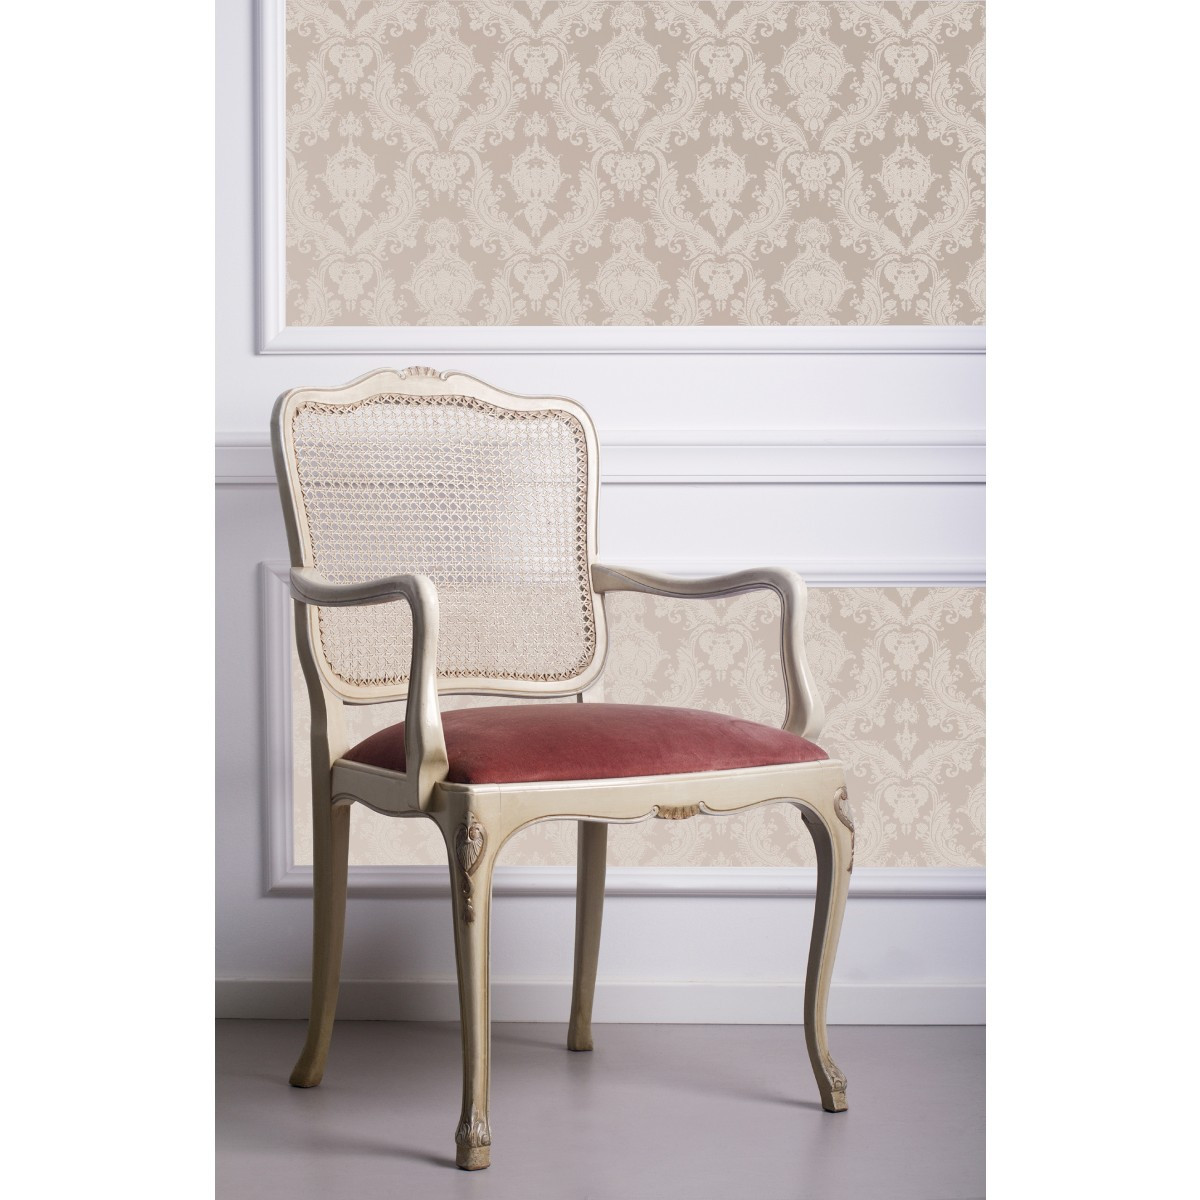 charming Textured Self Adhesive Tempaper Wallpaper in Bisque design matched with gray tile floor plus chairs for living room decor ideas